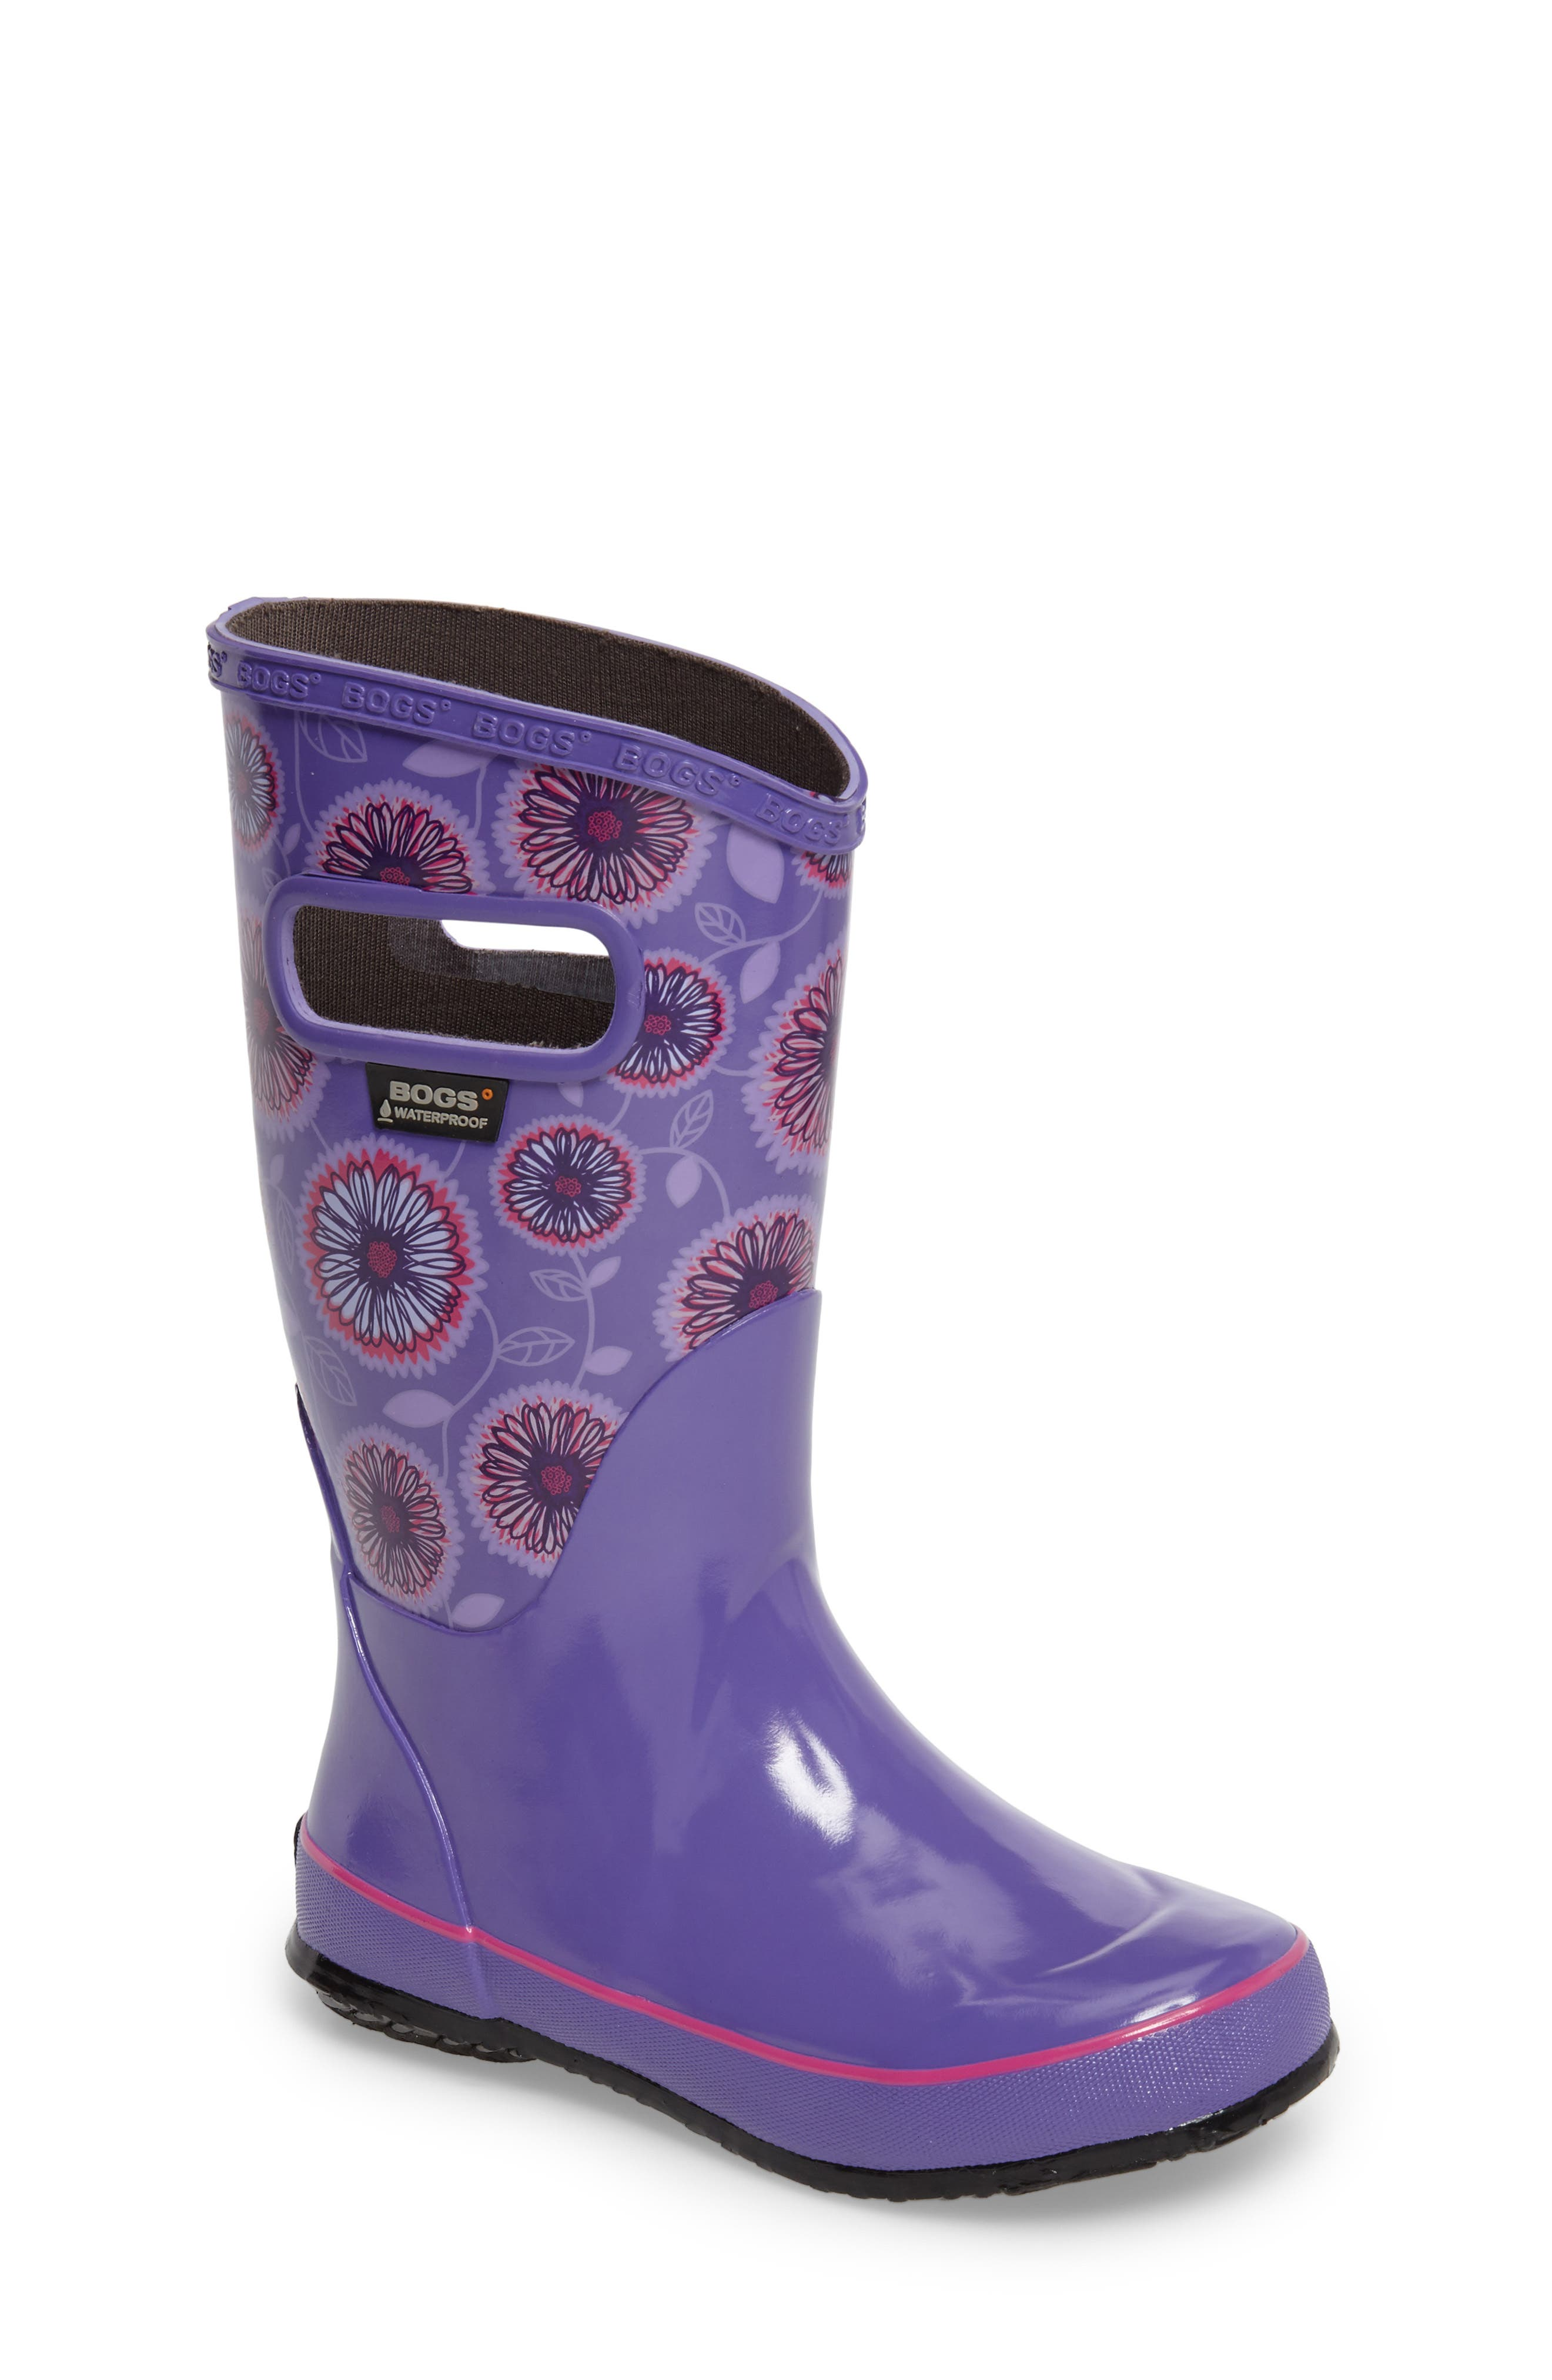 Wildflowers Rubber Rain Boot,                         Main,                         color, 500